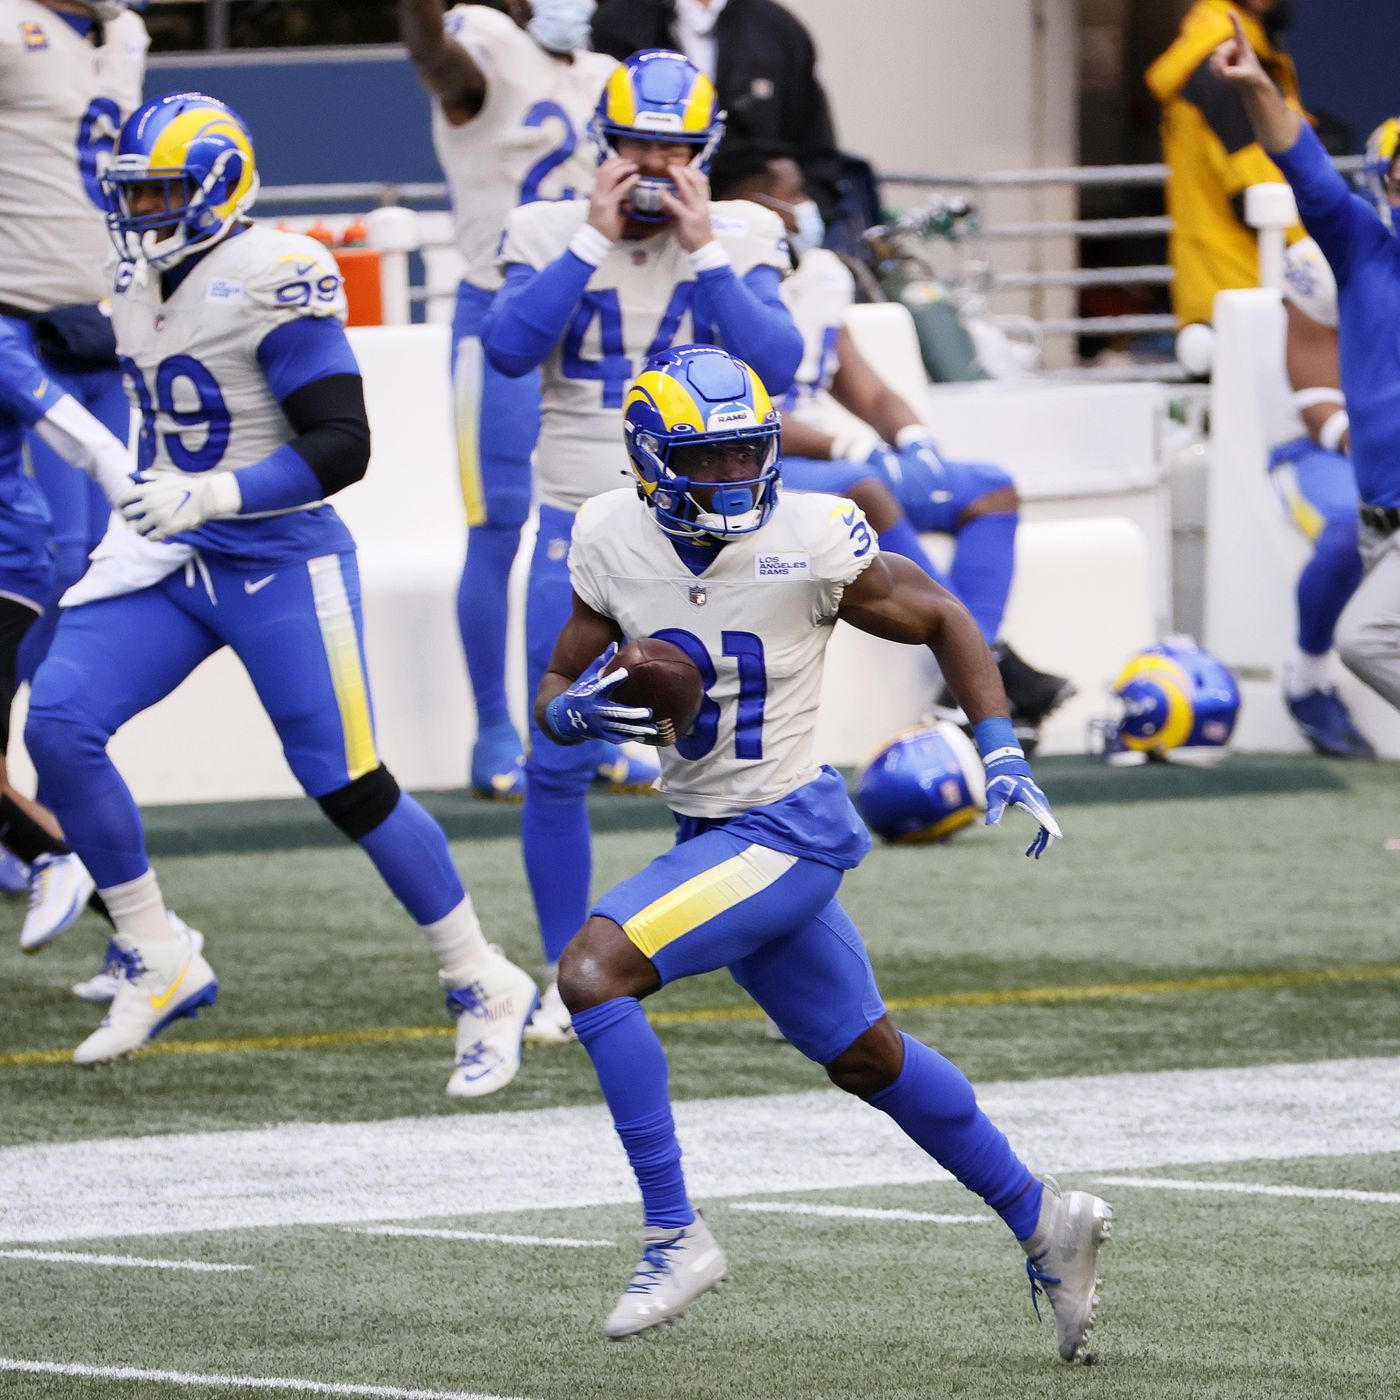 Rams News: CB Williams named 'under-the-radar' player for Rams in ...